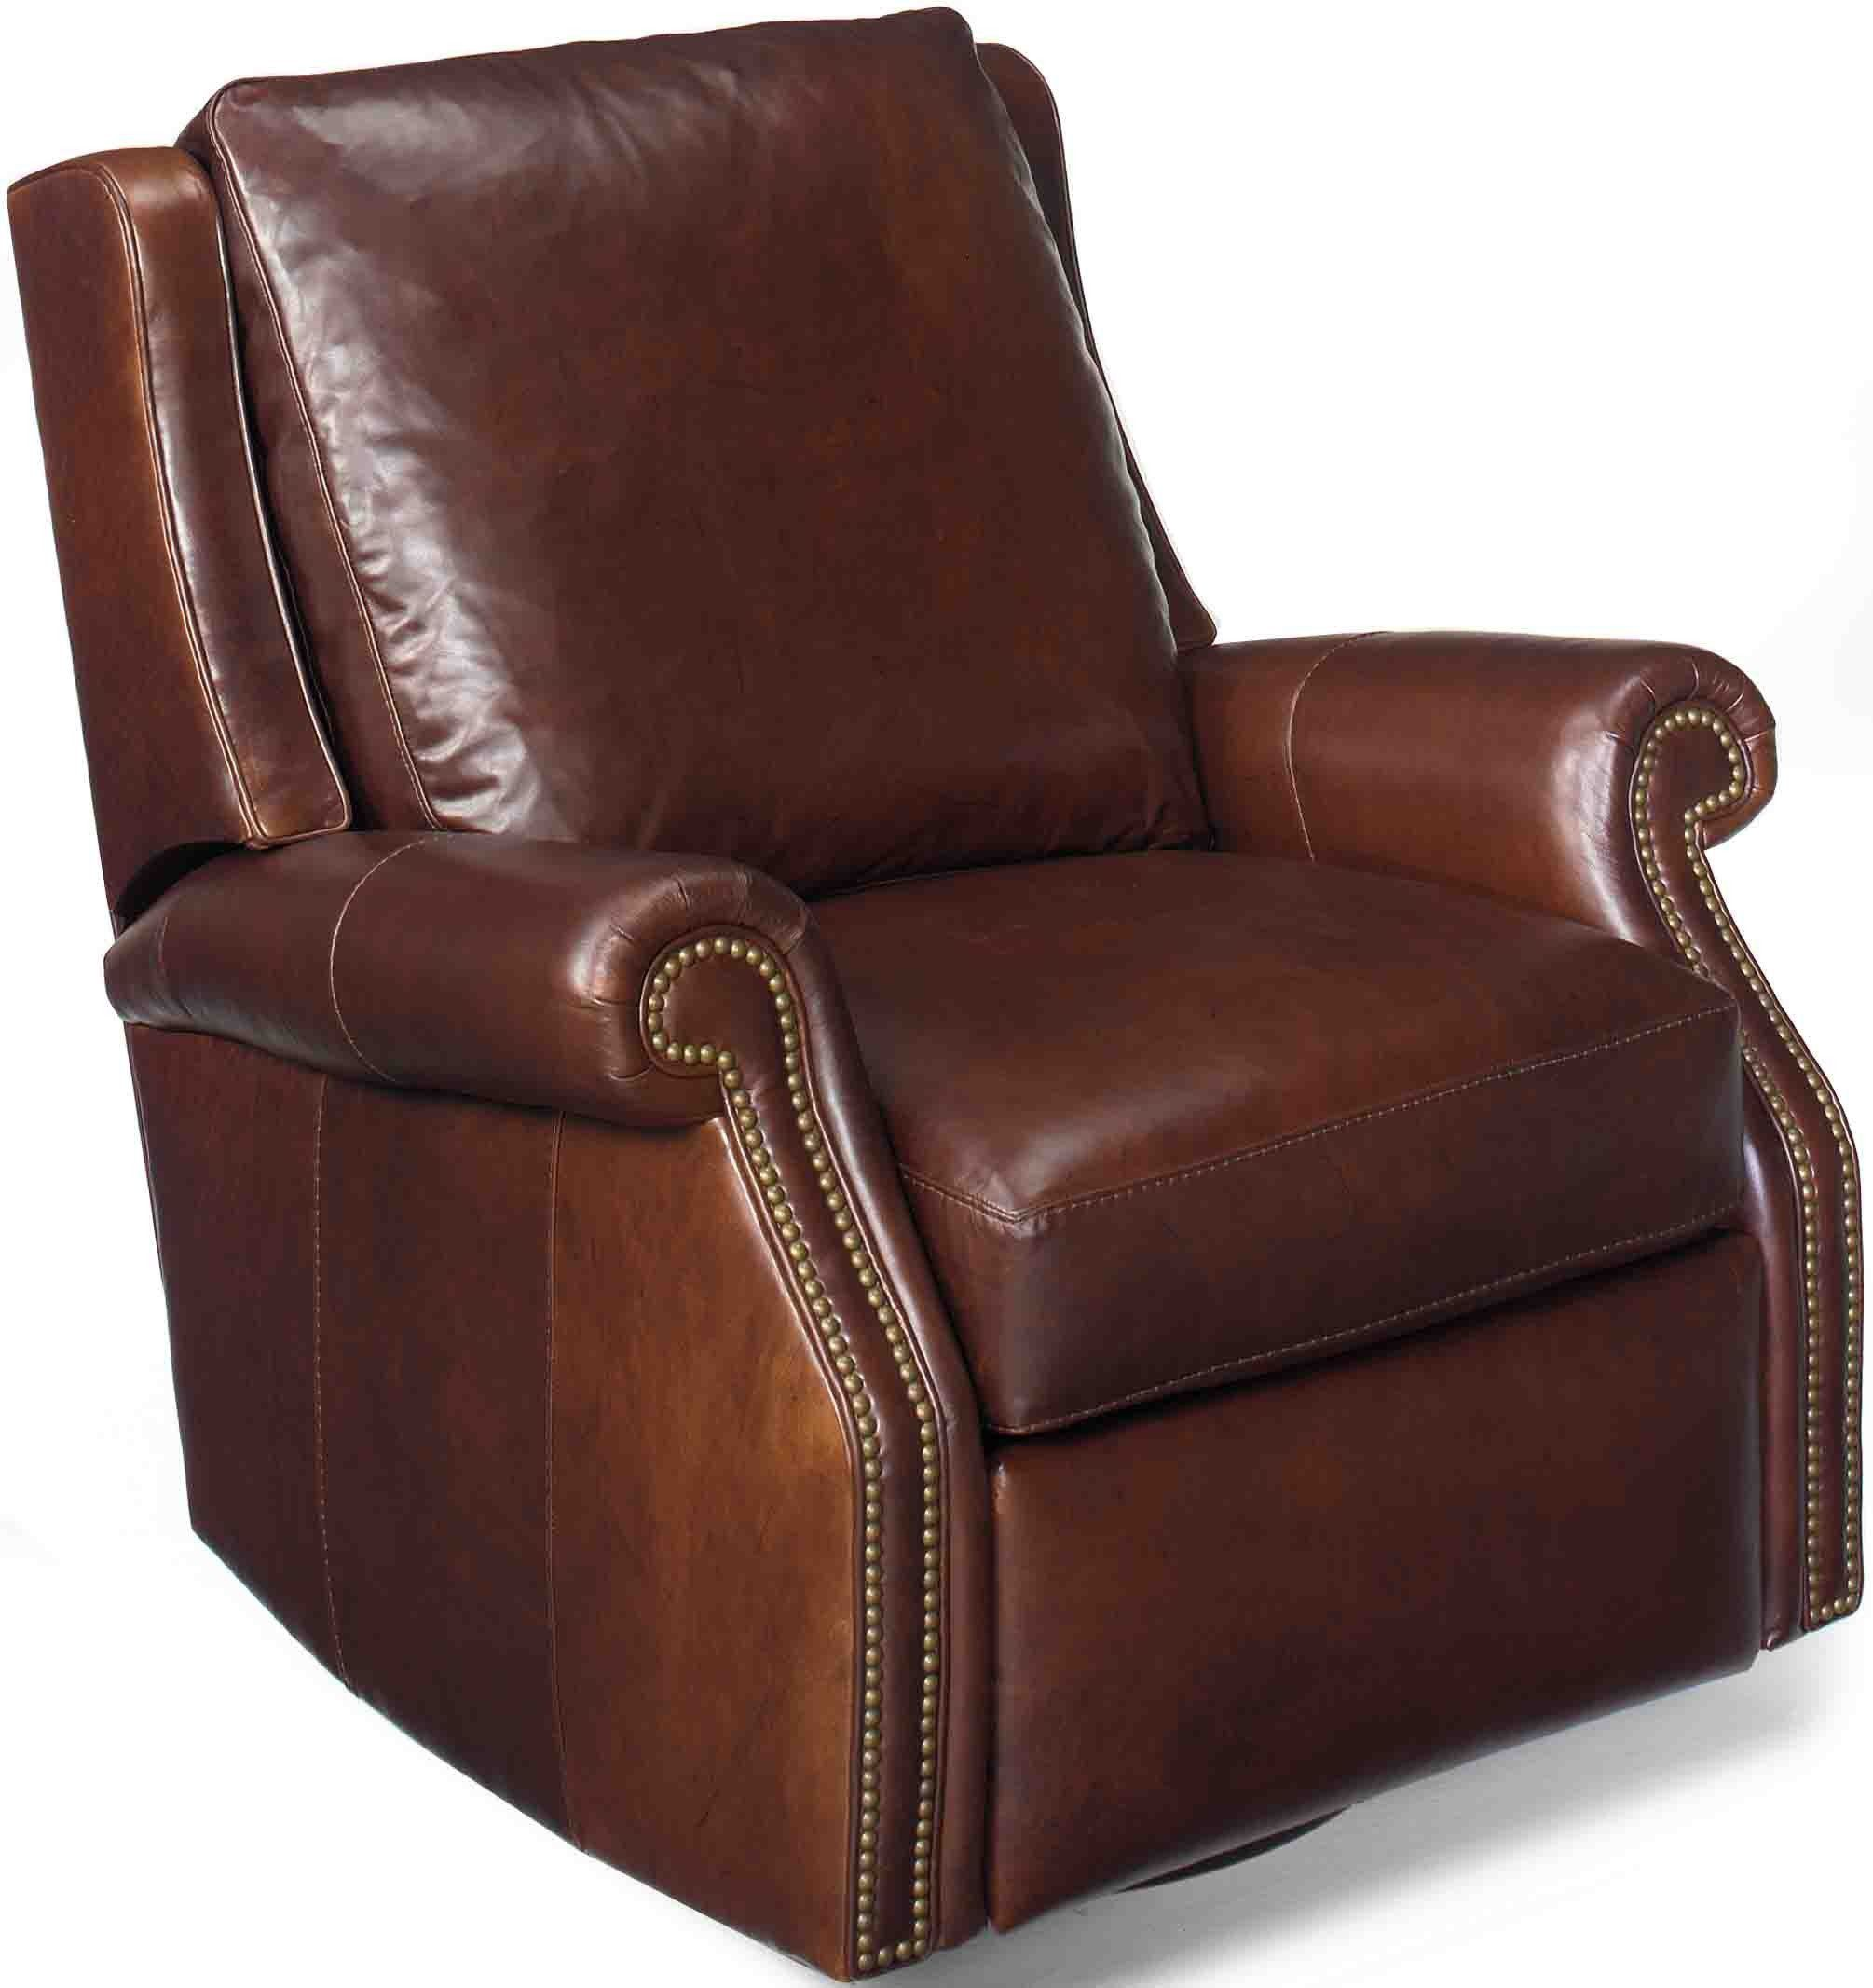 Strange Bradington Young Barcelo Swivel Glider Recliner By 7411 Sg Pdpeps Interior Chair Design Pdpepsorg